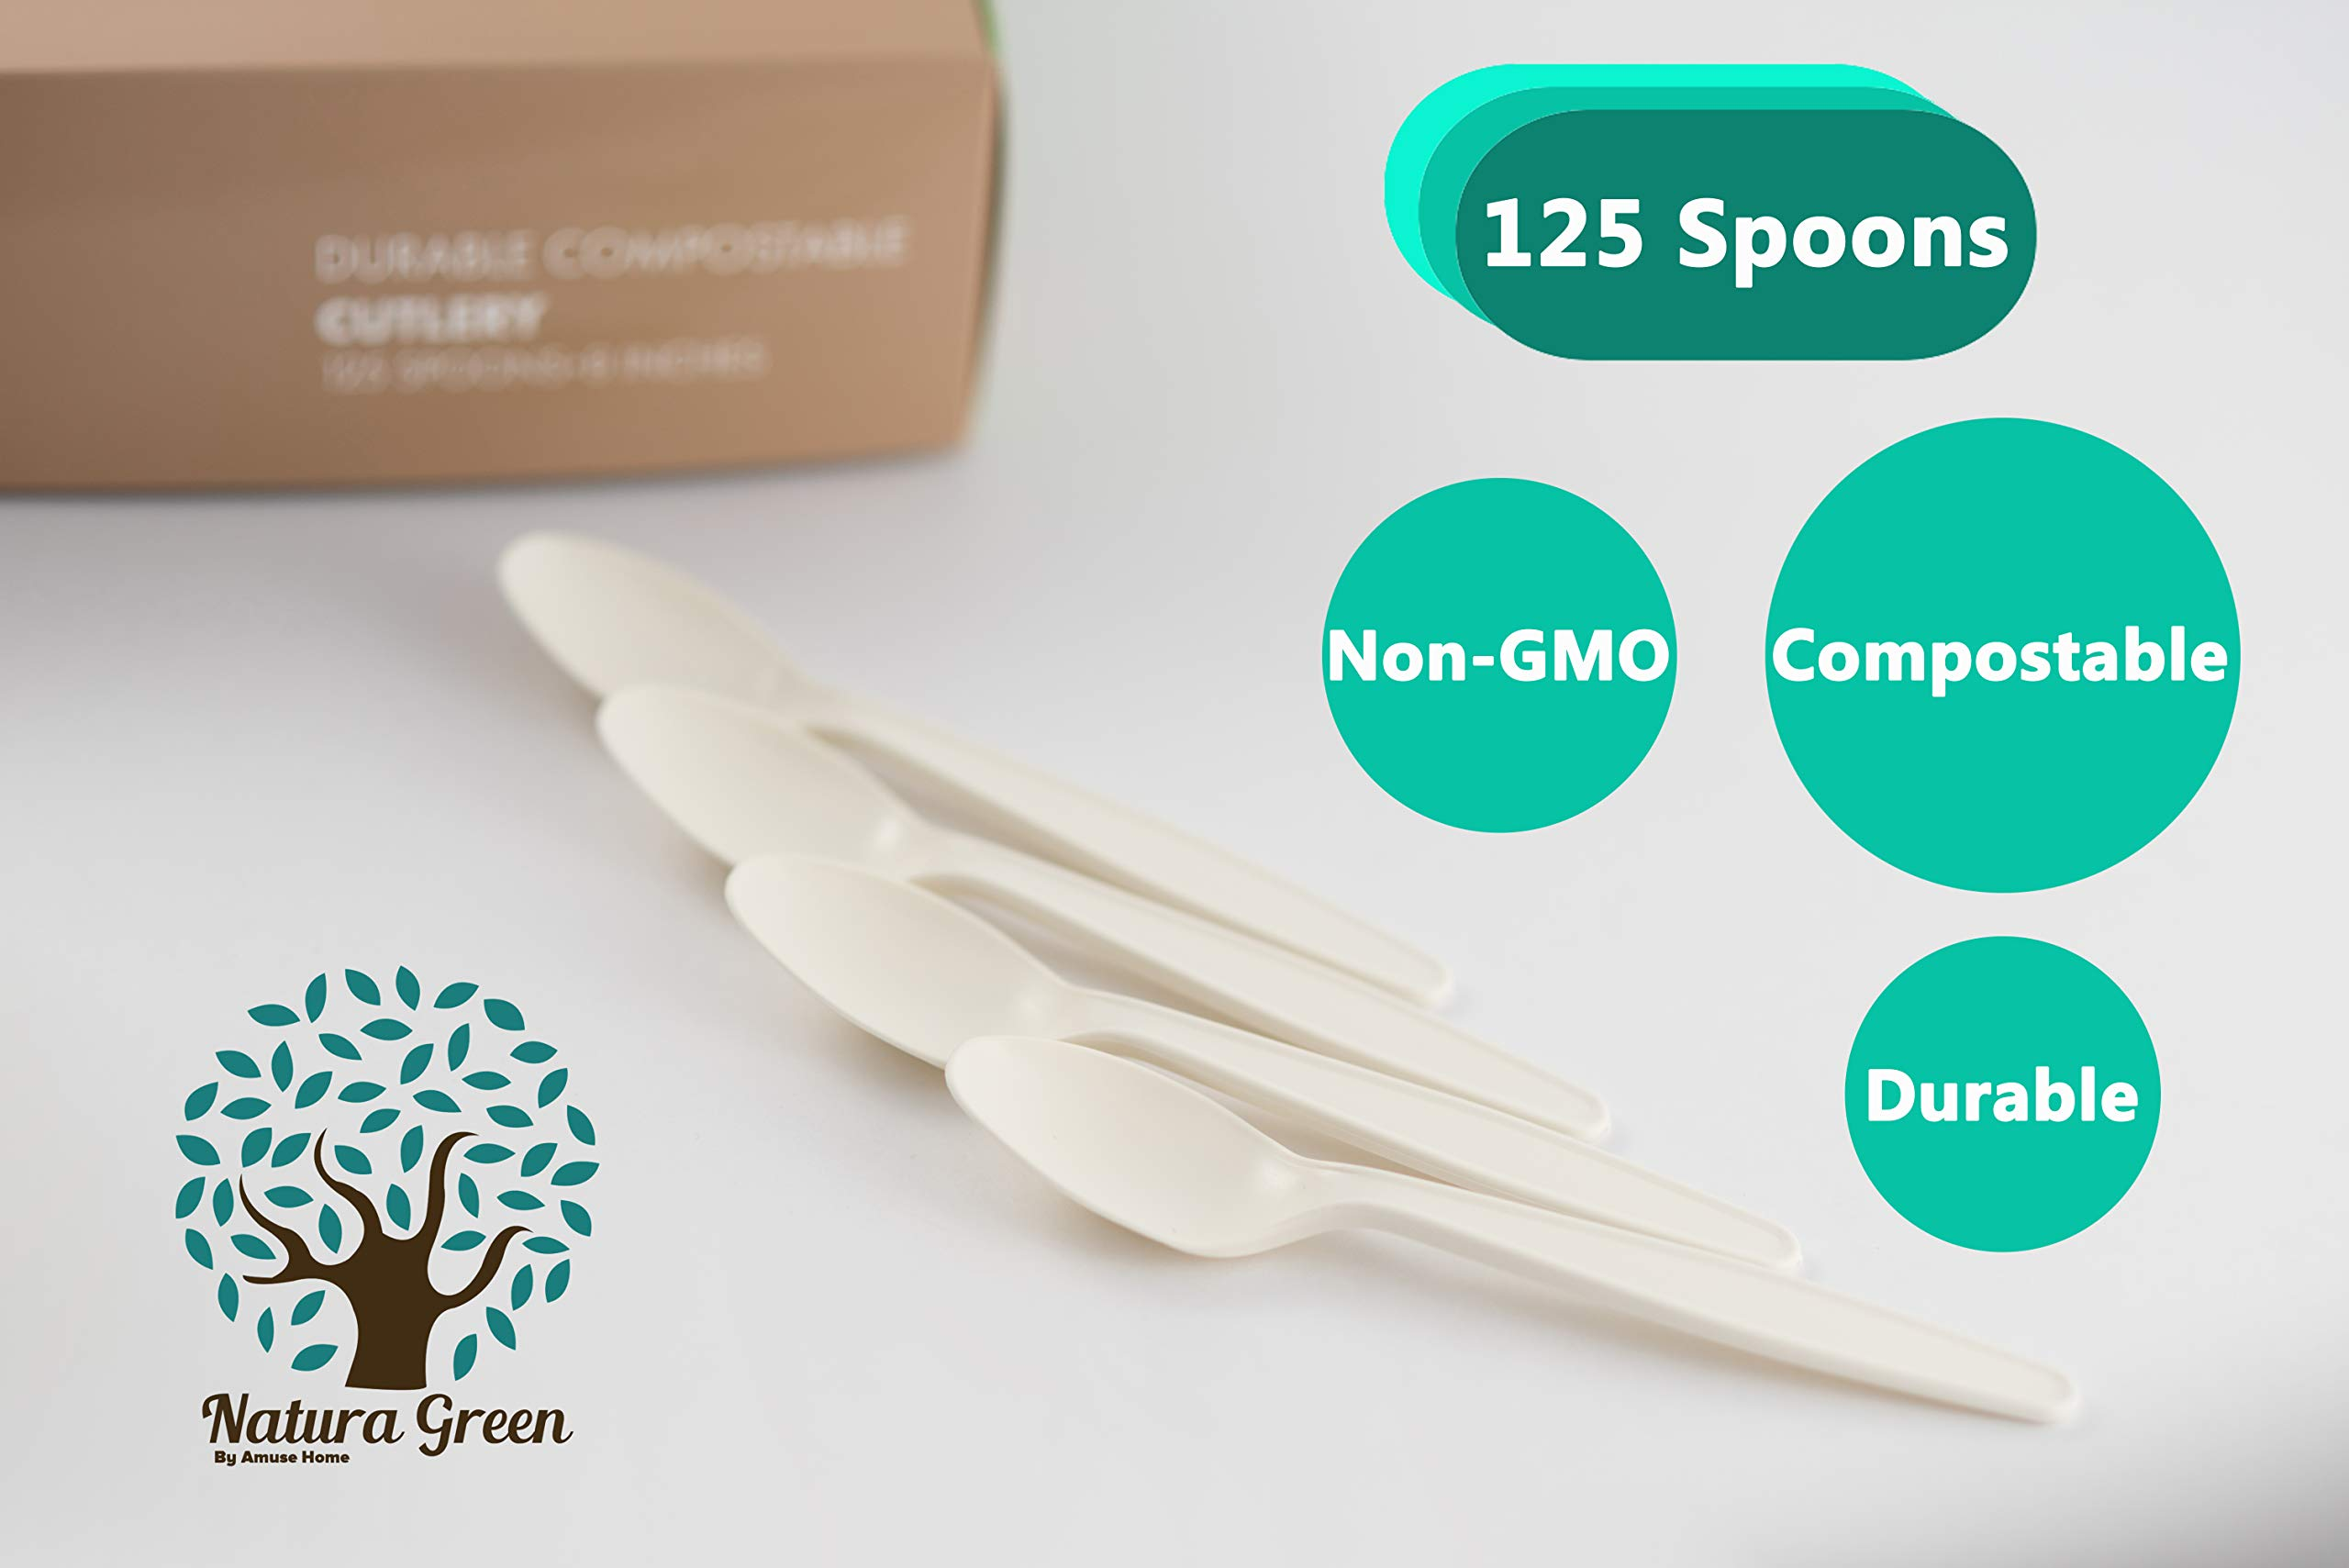 Natura Green- 100% Compostable Large Spoon (8 inches) - 125 units packed in a beautiful and convenient Tray. BPA & Toxin Free. by Amuse Home